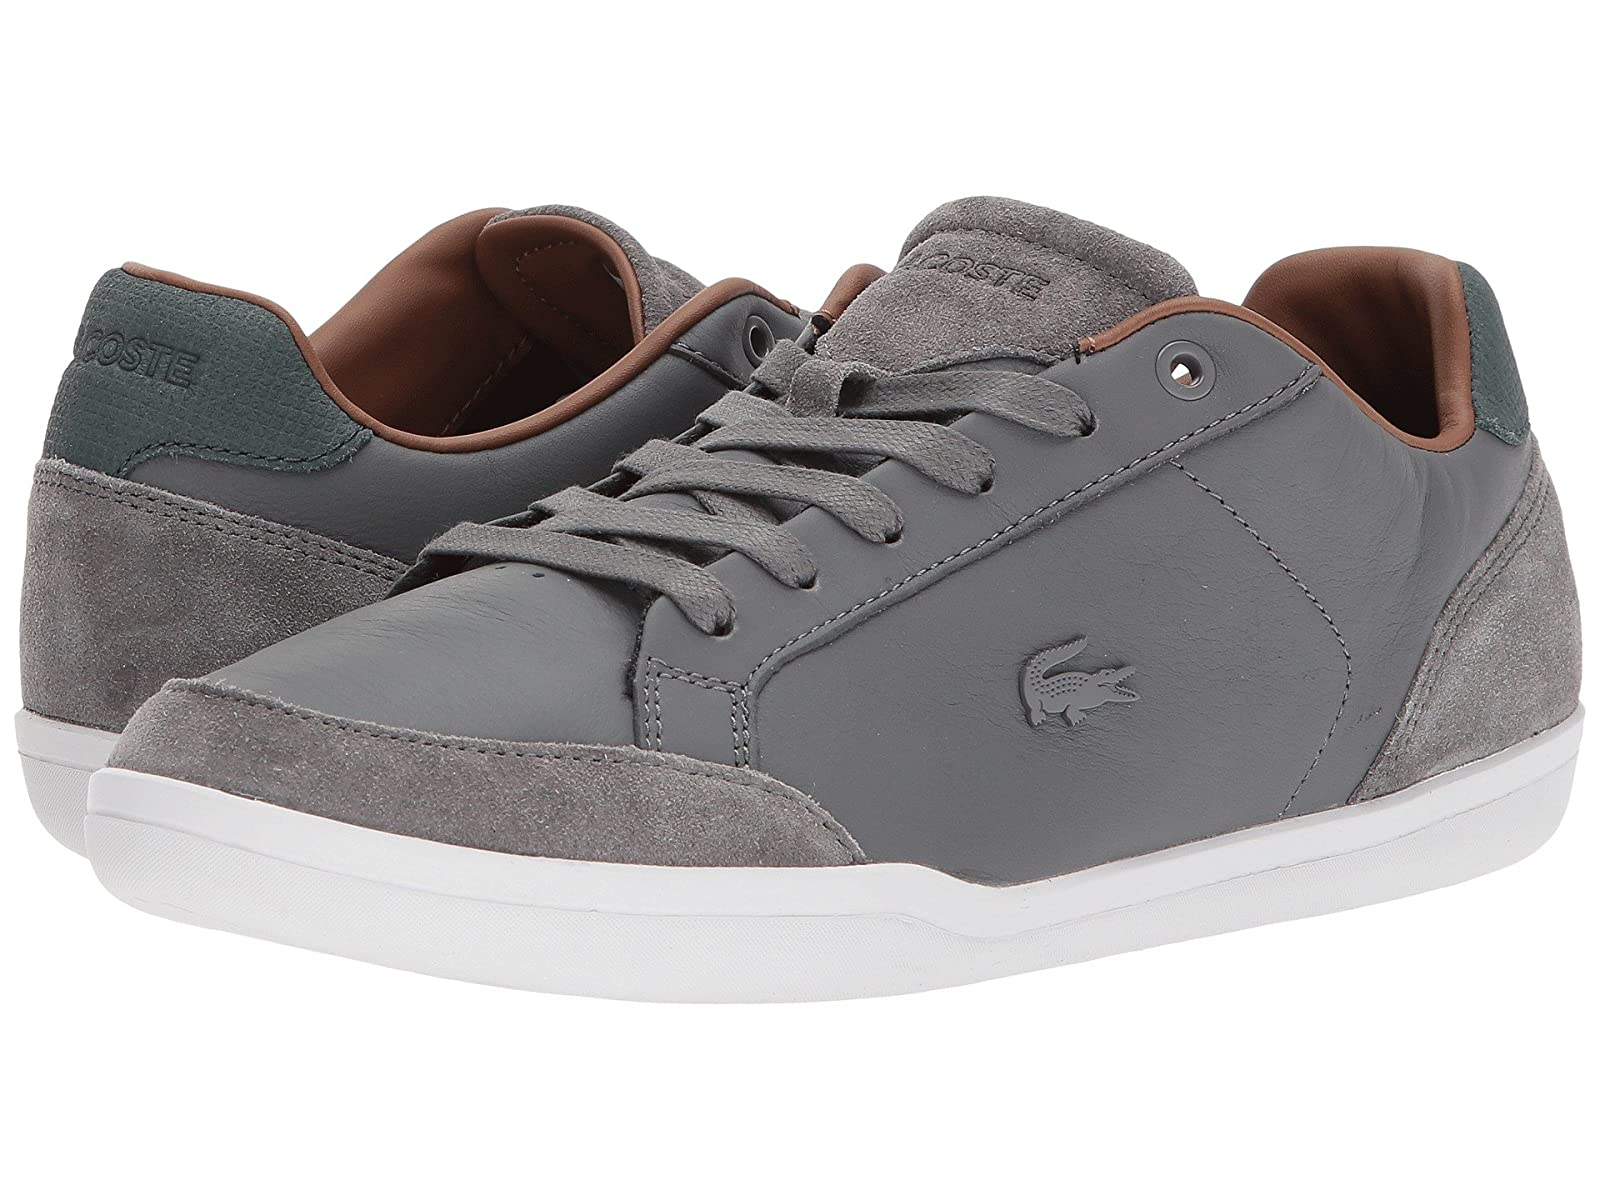 Lacoste Set-Minimal 317 1Cheap and distinctive eye-catching shoes